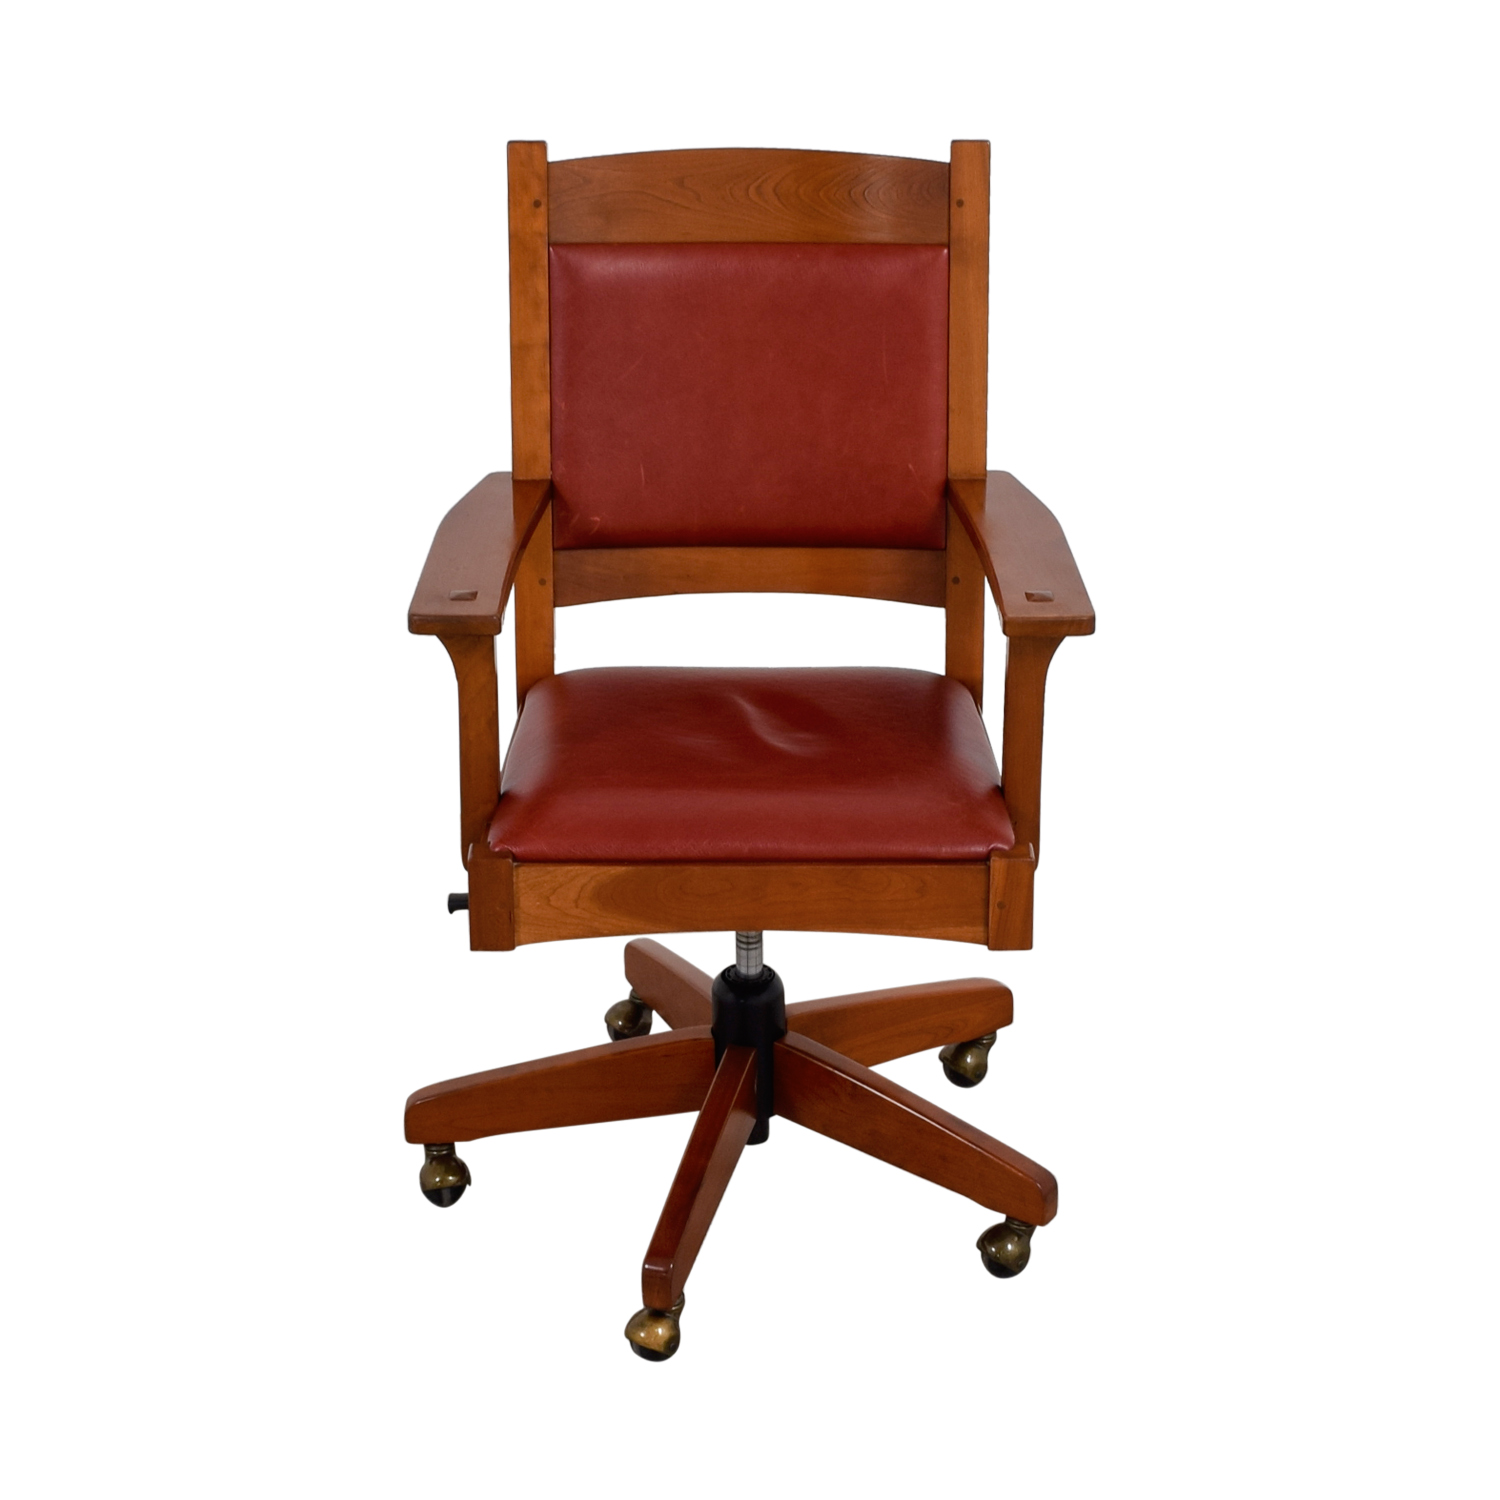 red leather office chair. Stickley Furniture Red Leather Desk Chair Office